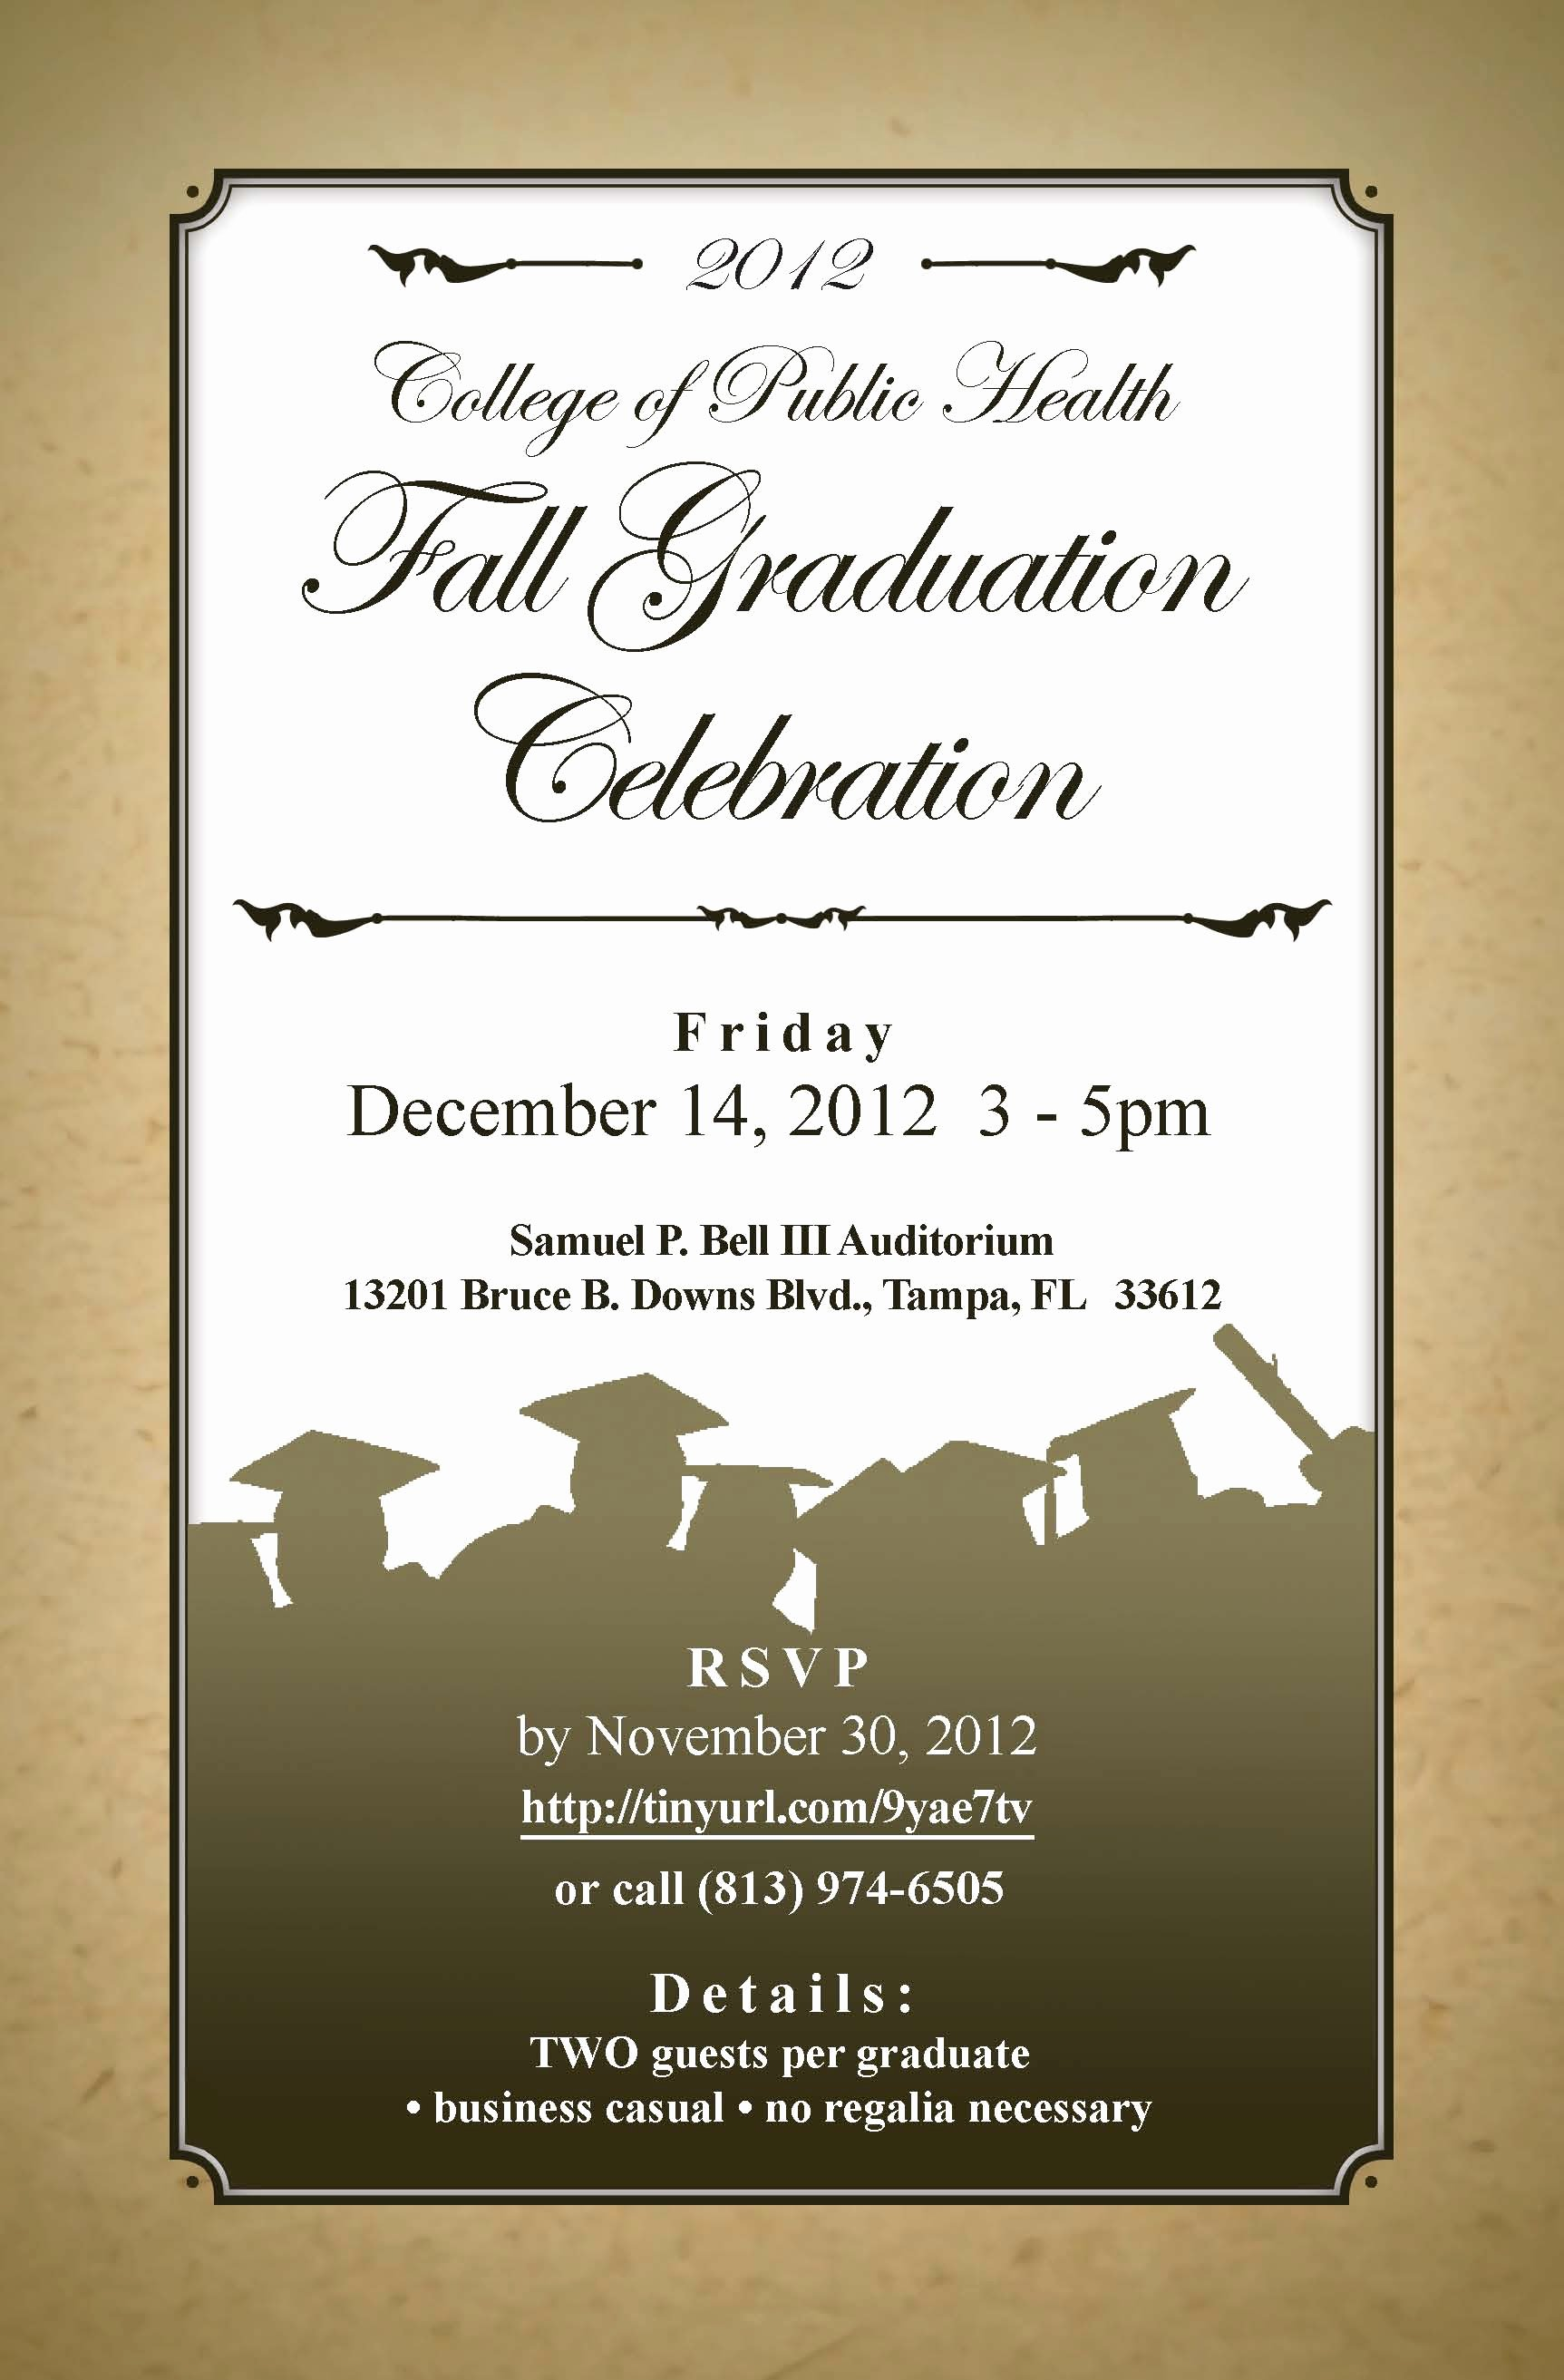 Graduation Ceremony Invitation Card Elegant Quotes About Graduation Ceremony 55 Quotes